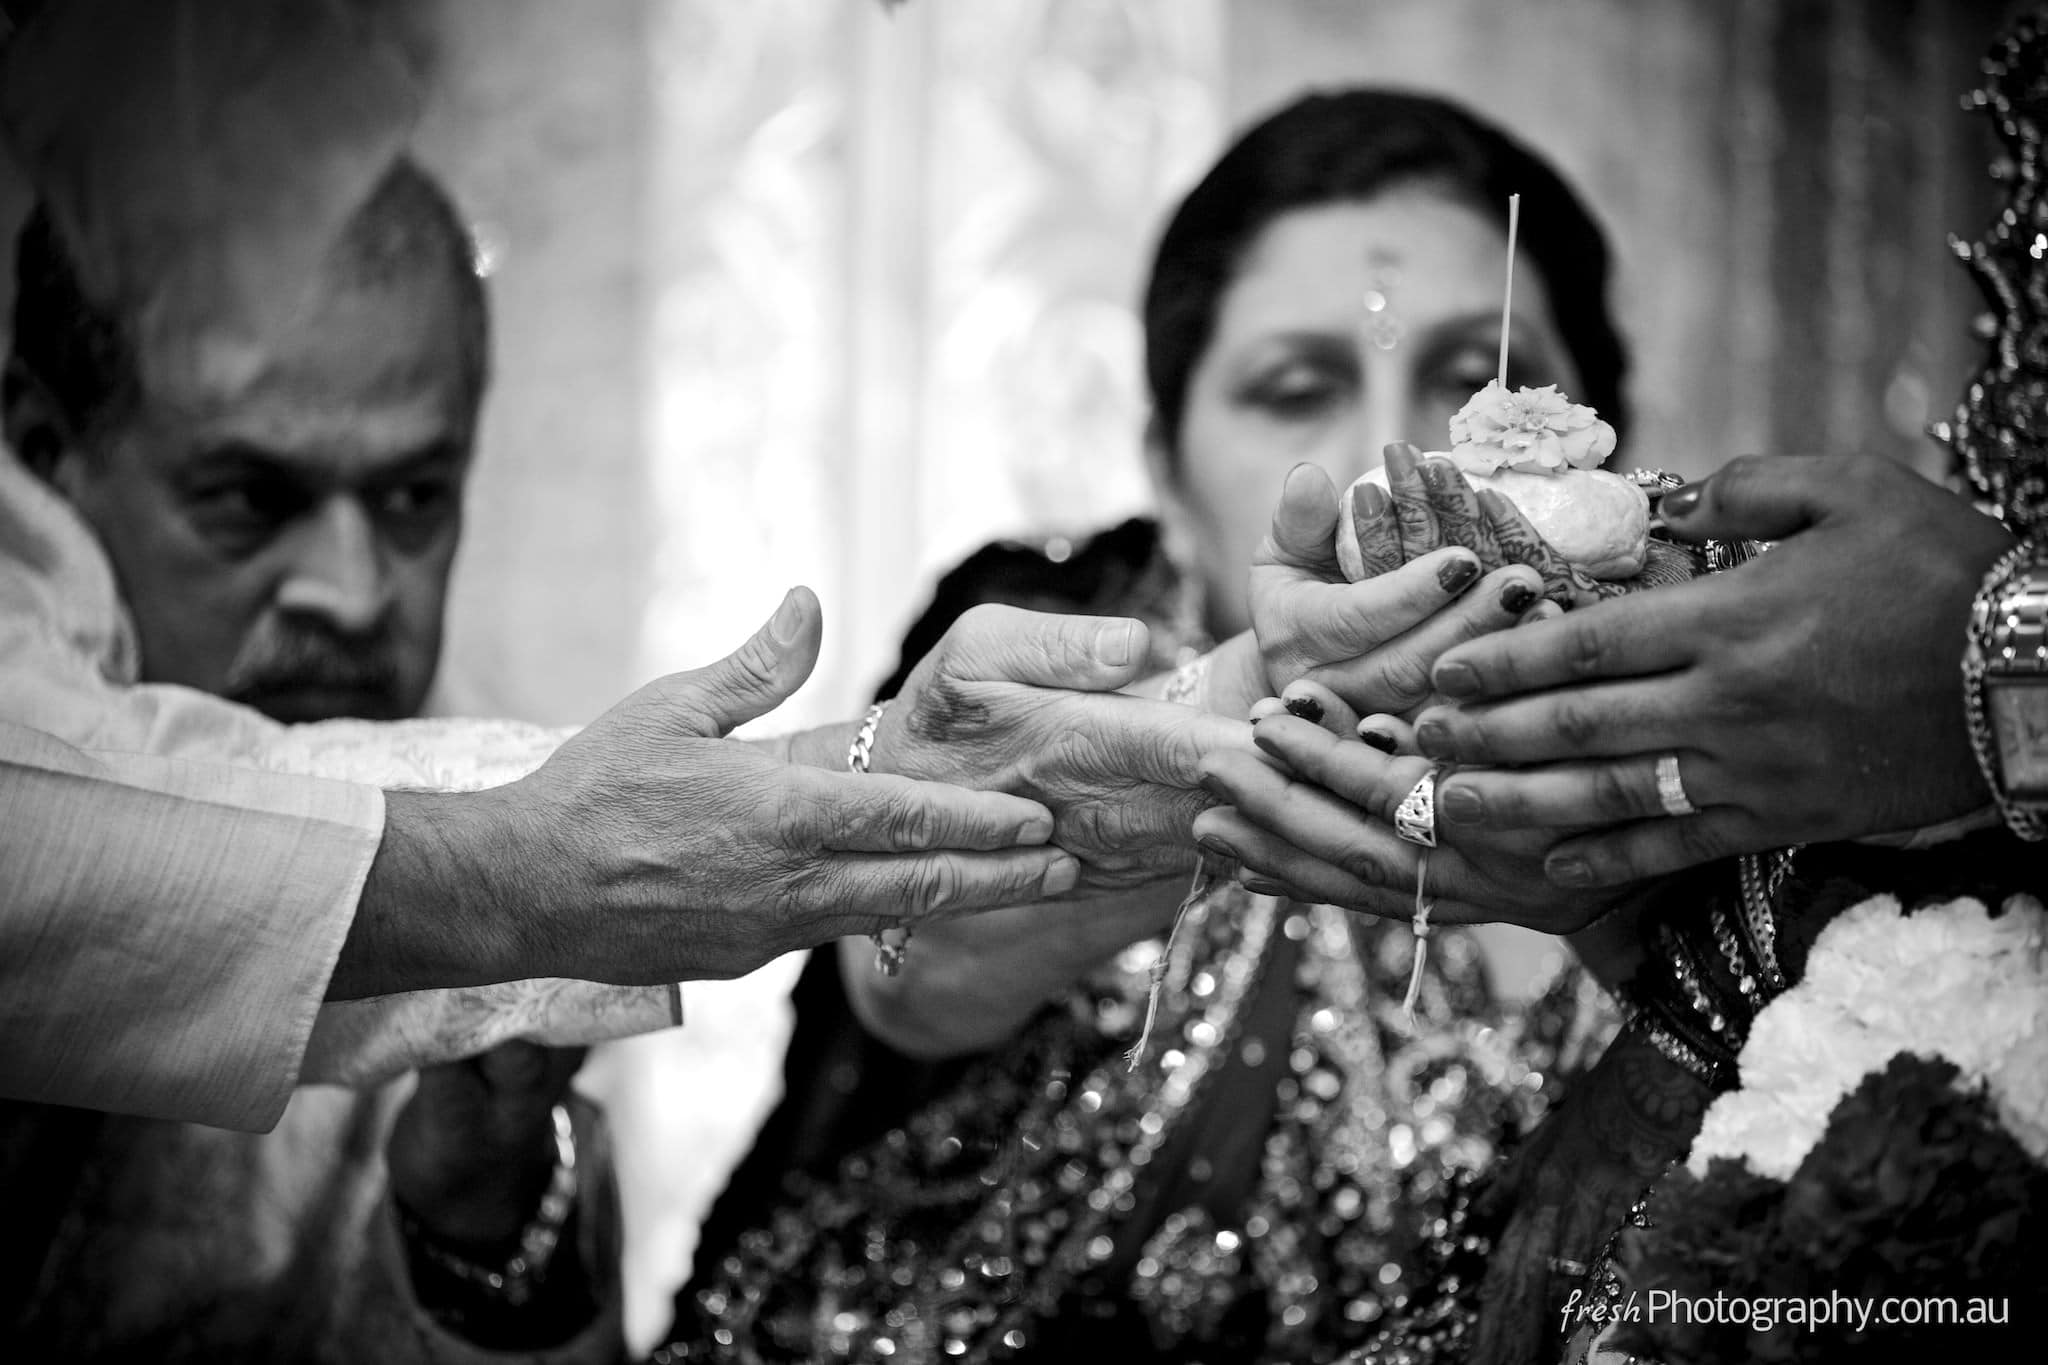 Wedding photography - documenting your big day in a natural way